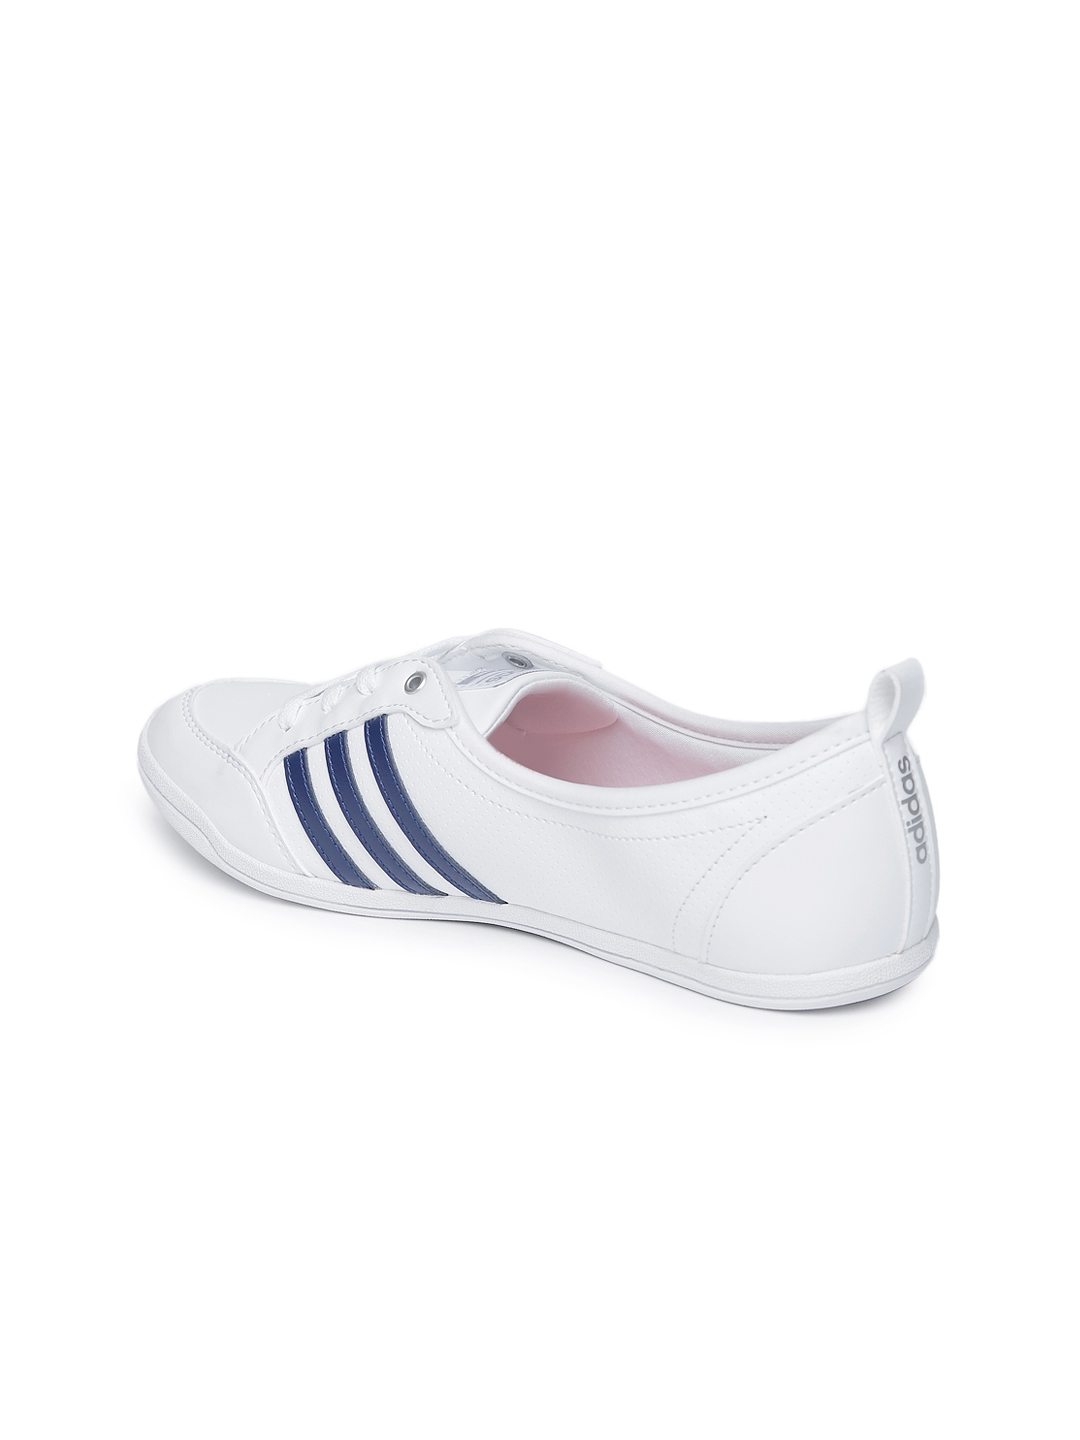 adidas neo piona shoes